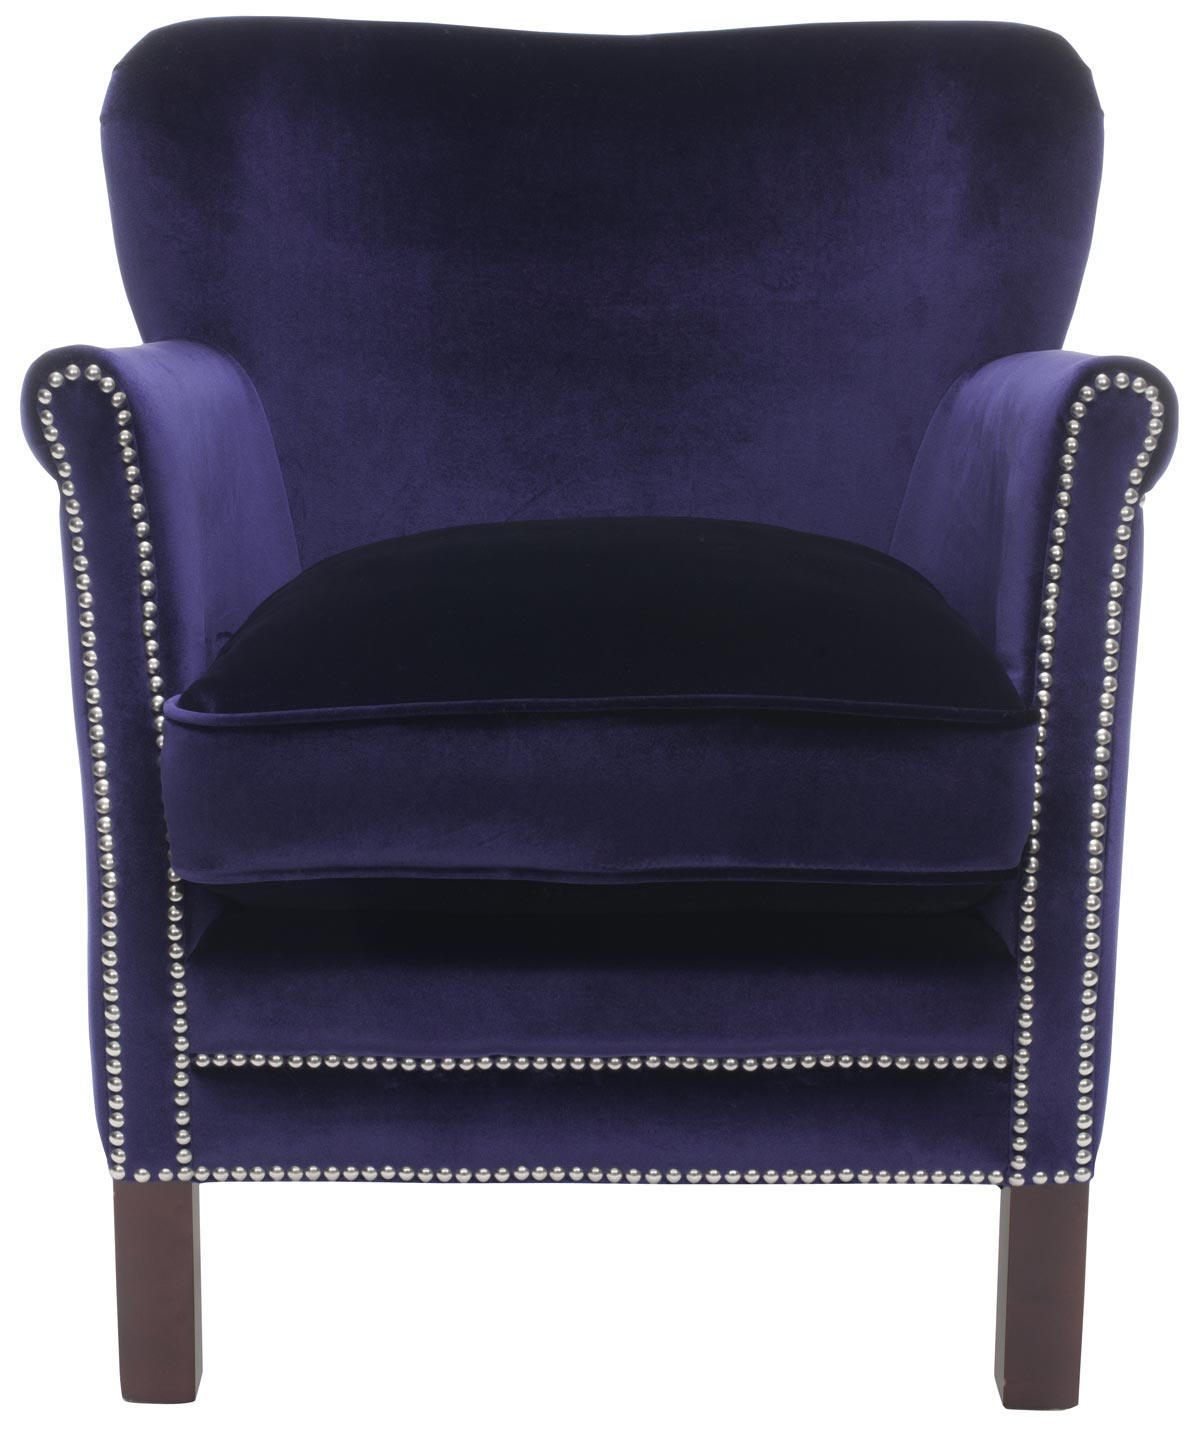 Genial ACCENT CHAIRS. Color: Royal Blue